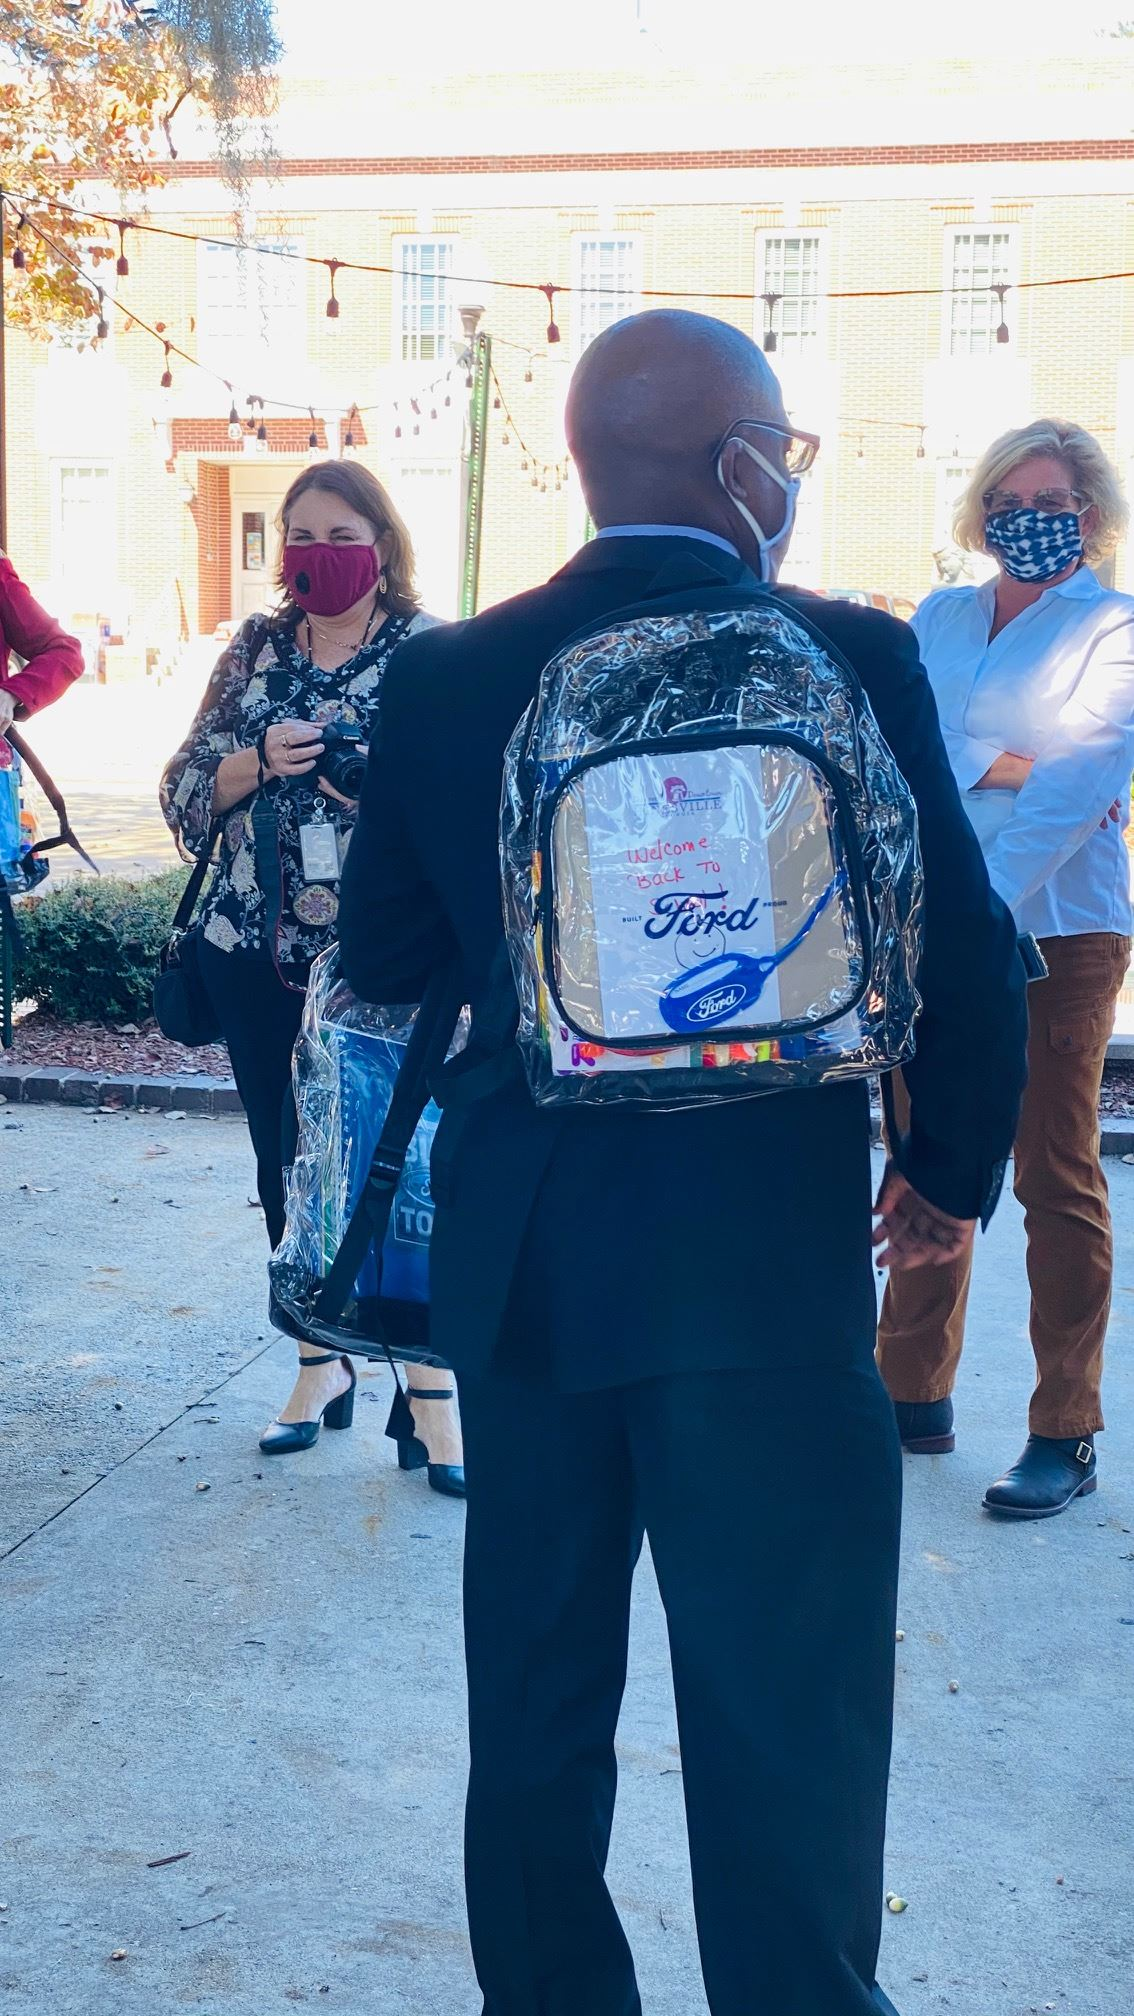 Hinesville District 5 Councilman Karl Riles wears carries a backpack to be given to a student